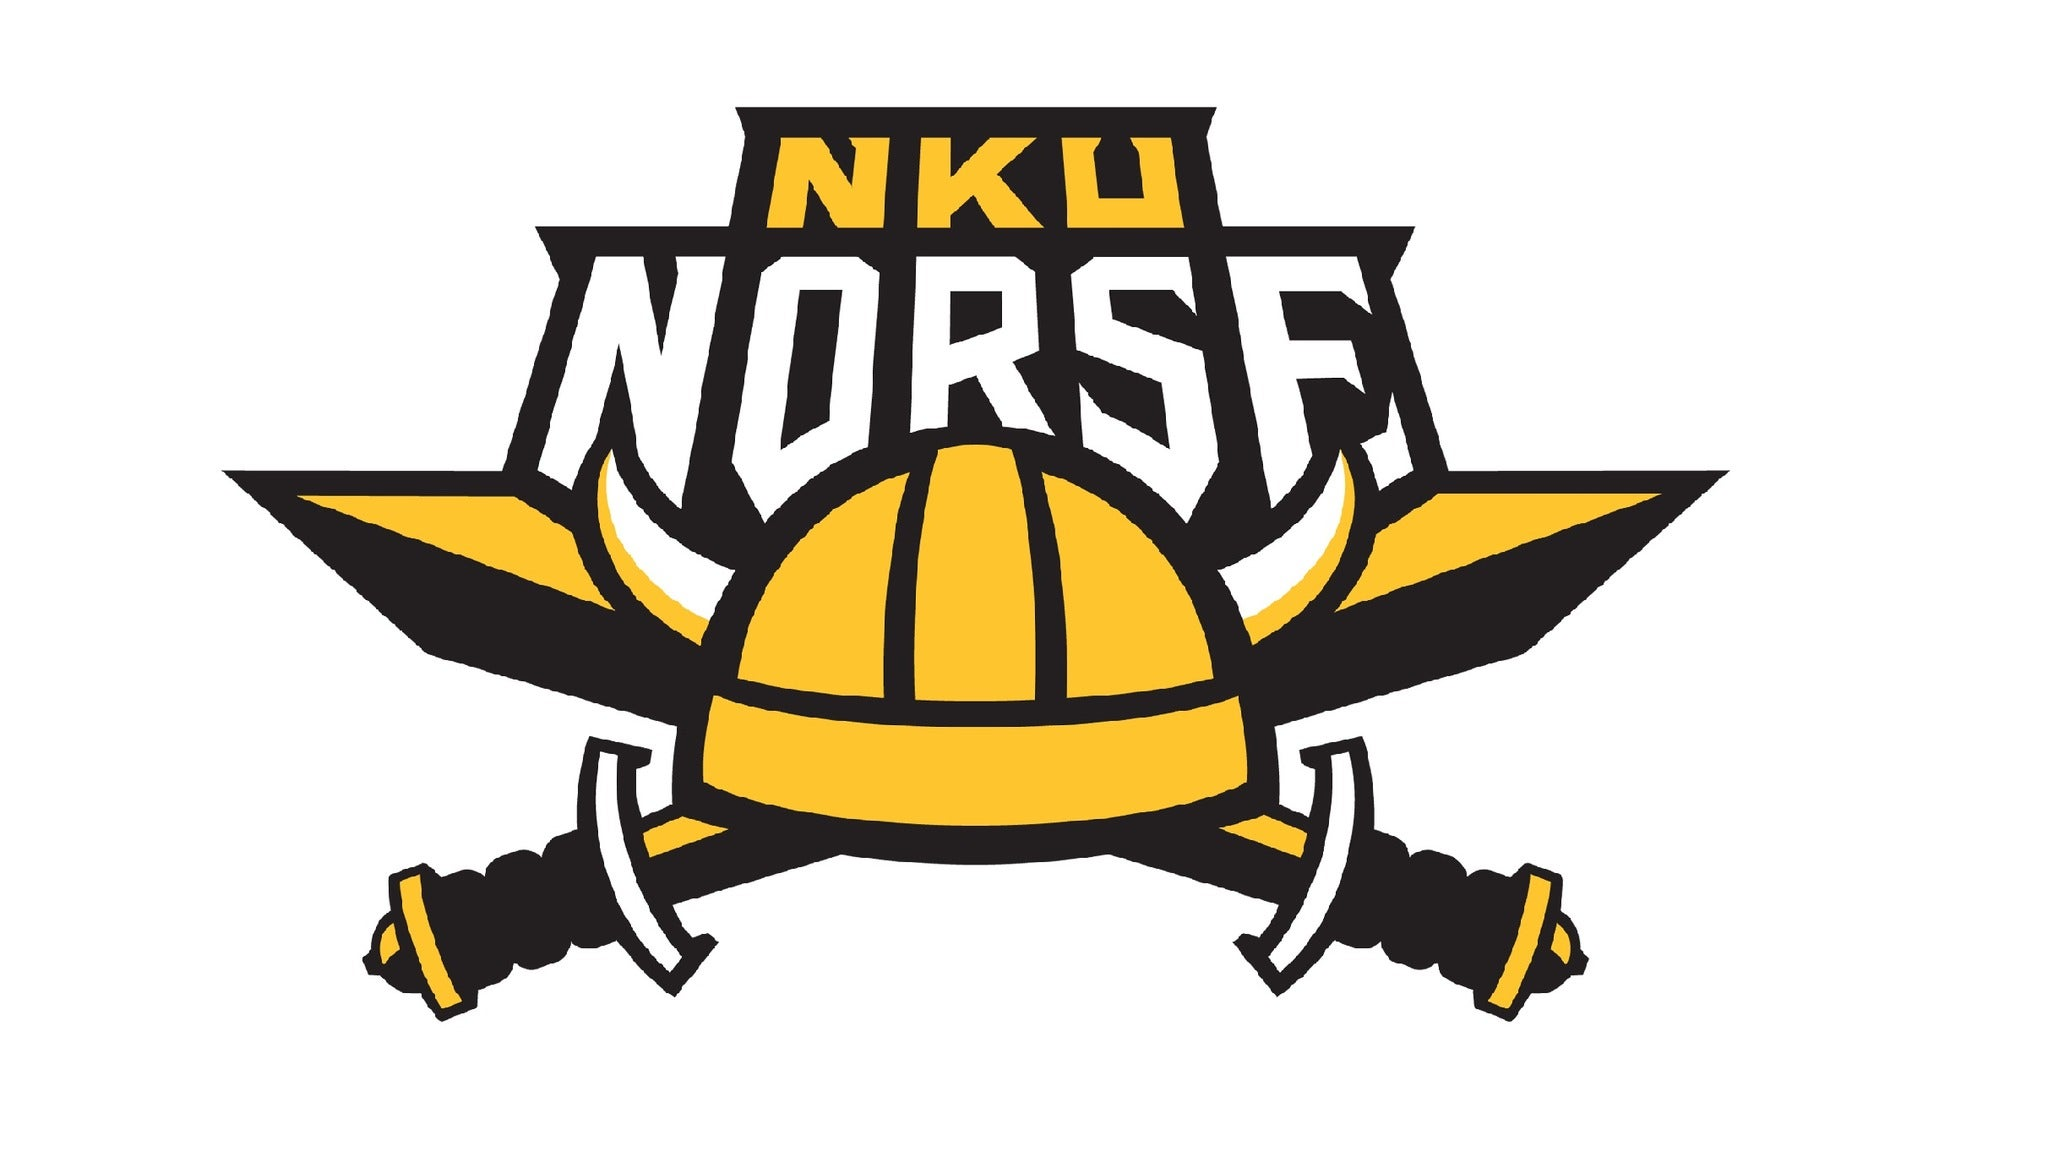 Northern Kentucky Norse Womens Basketball at BB&T Arena